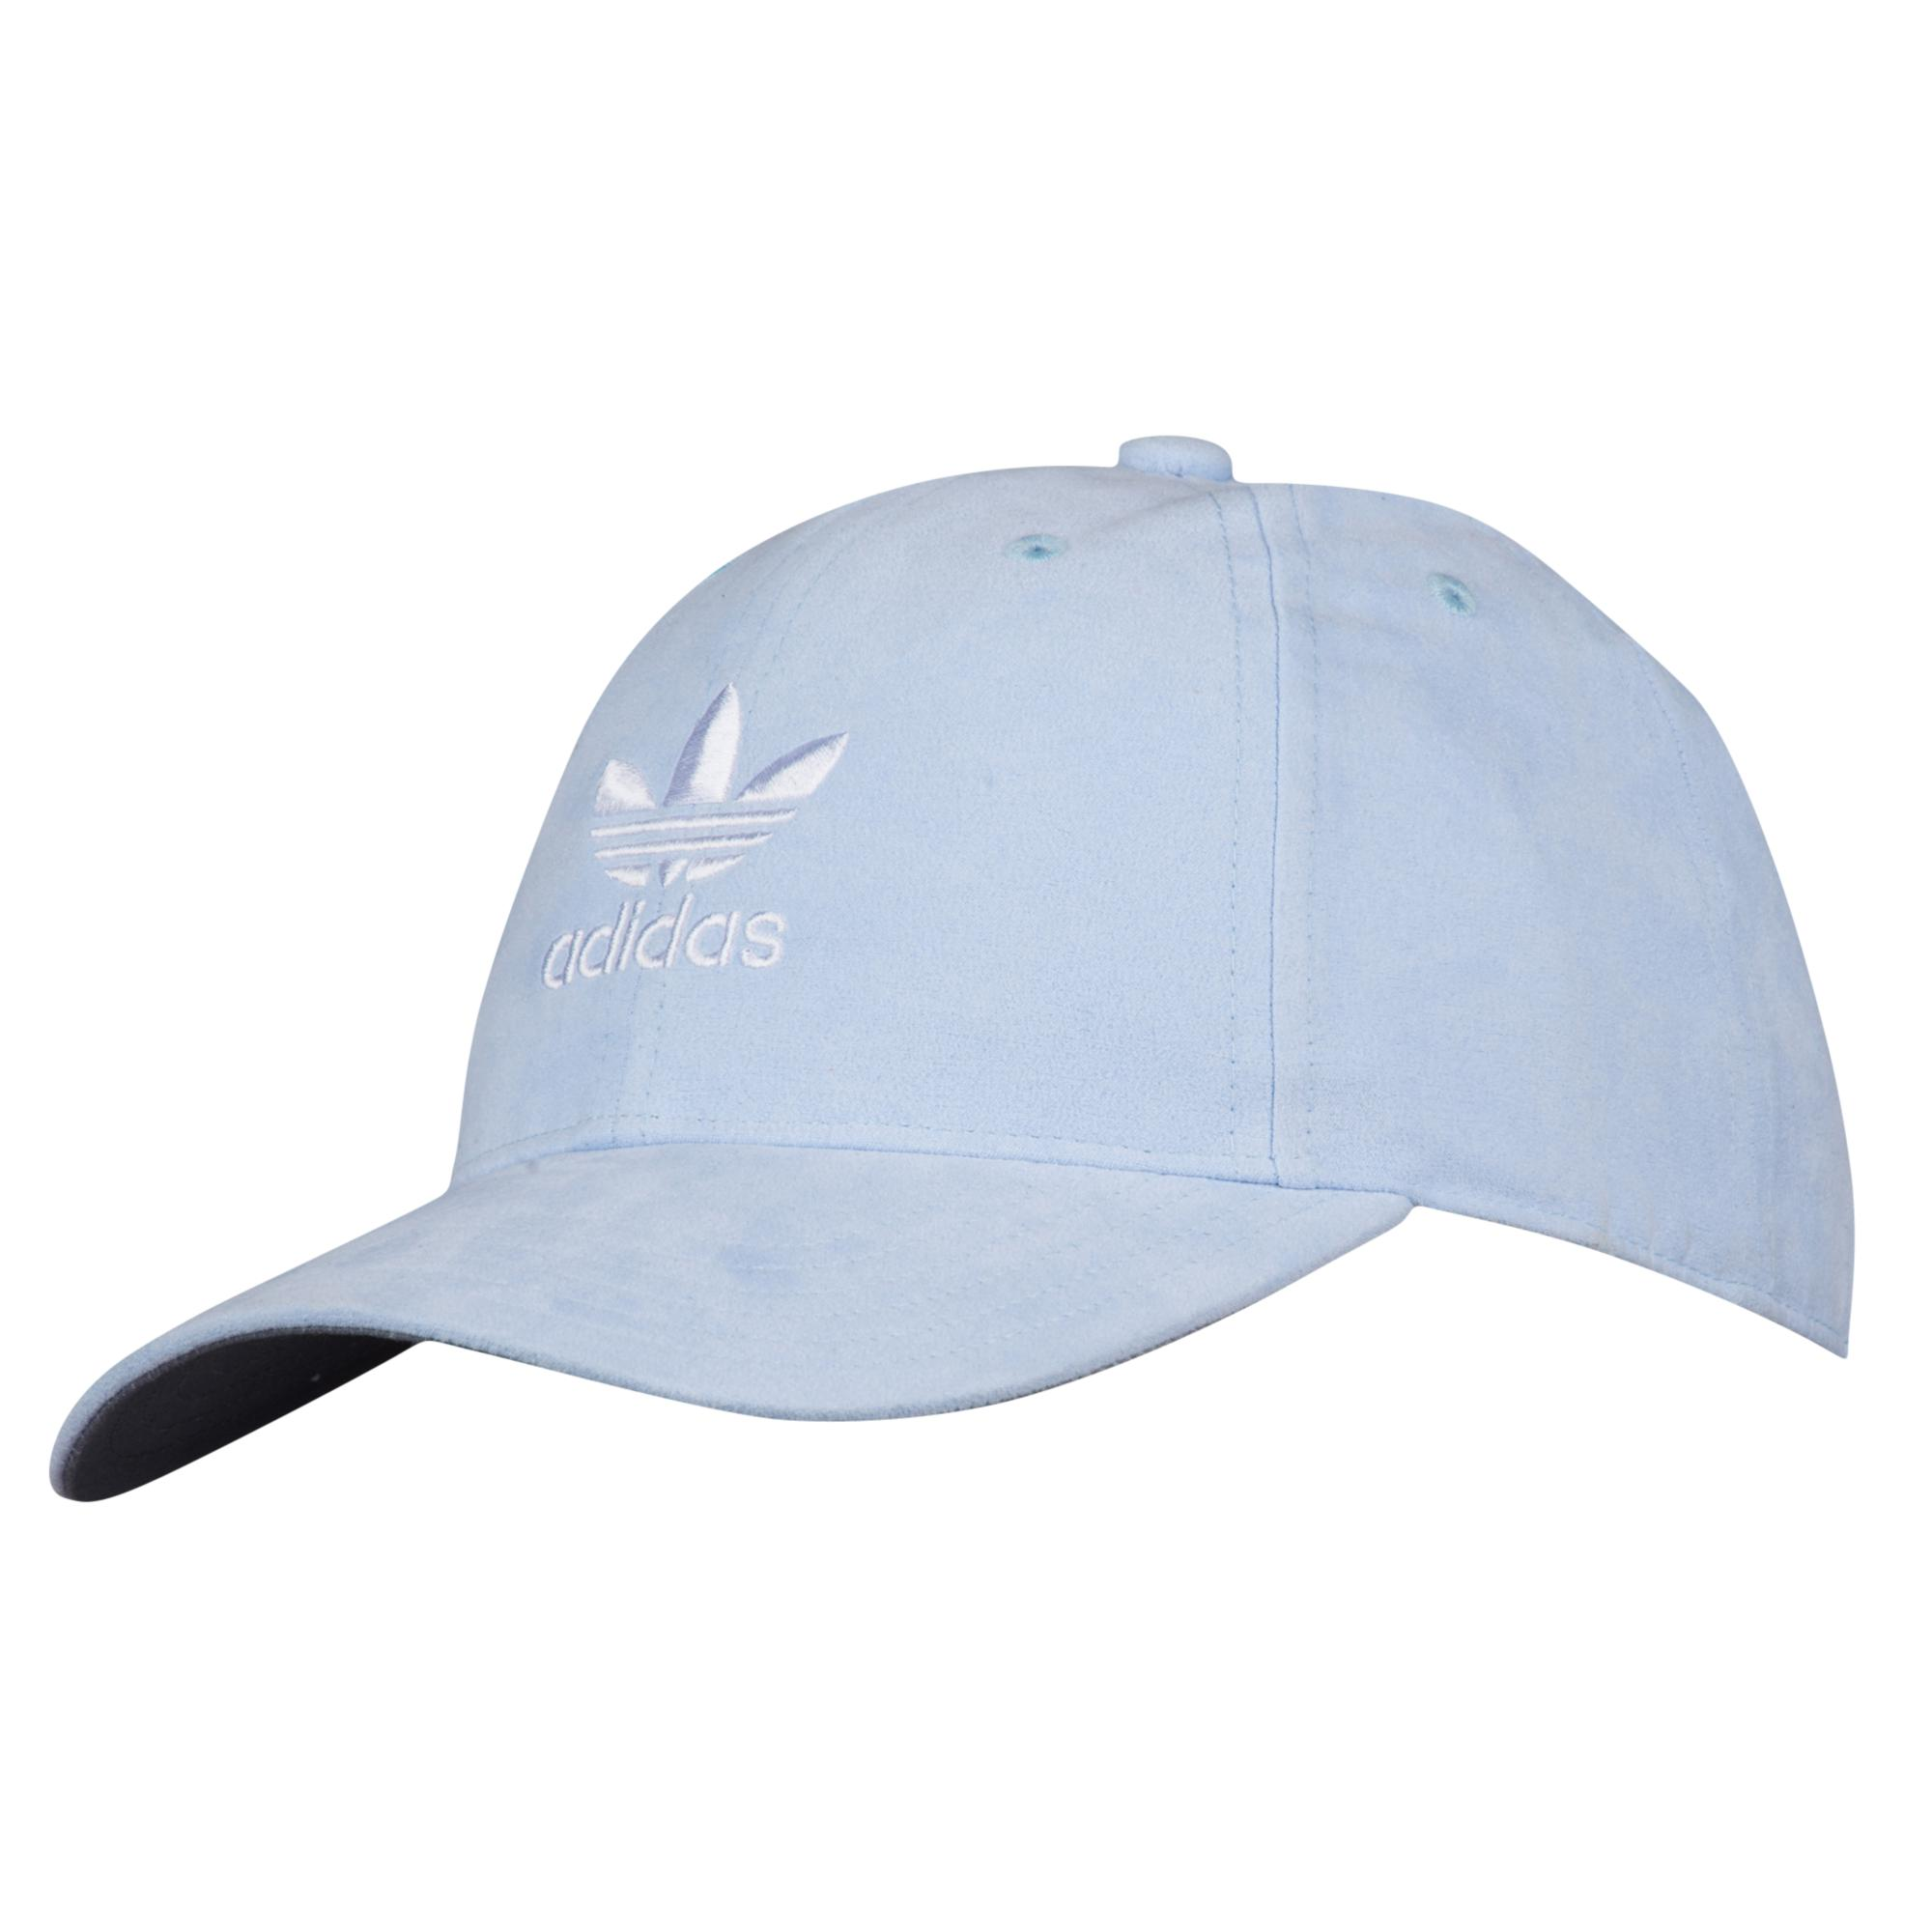 4720d0913c411 Lyst - adidas Originals Suede Relaxed Strapback Hat in Blue